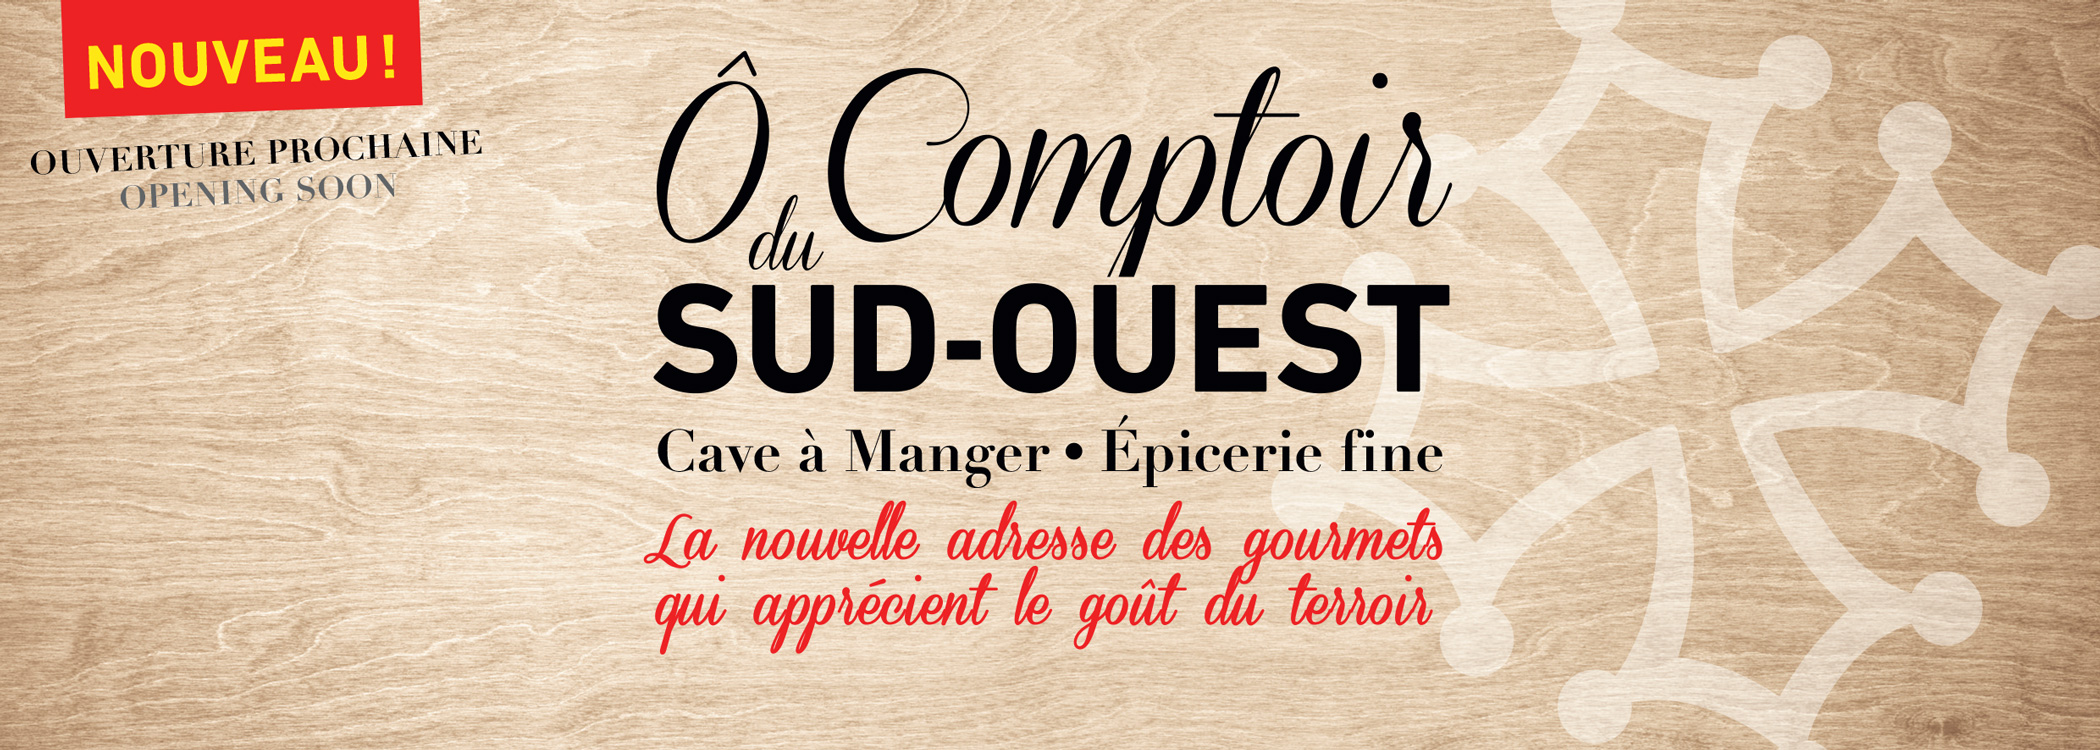 Brunch Ô comptoir du Sud-Ouest (75008 Paris)